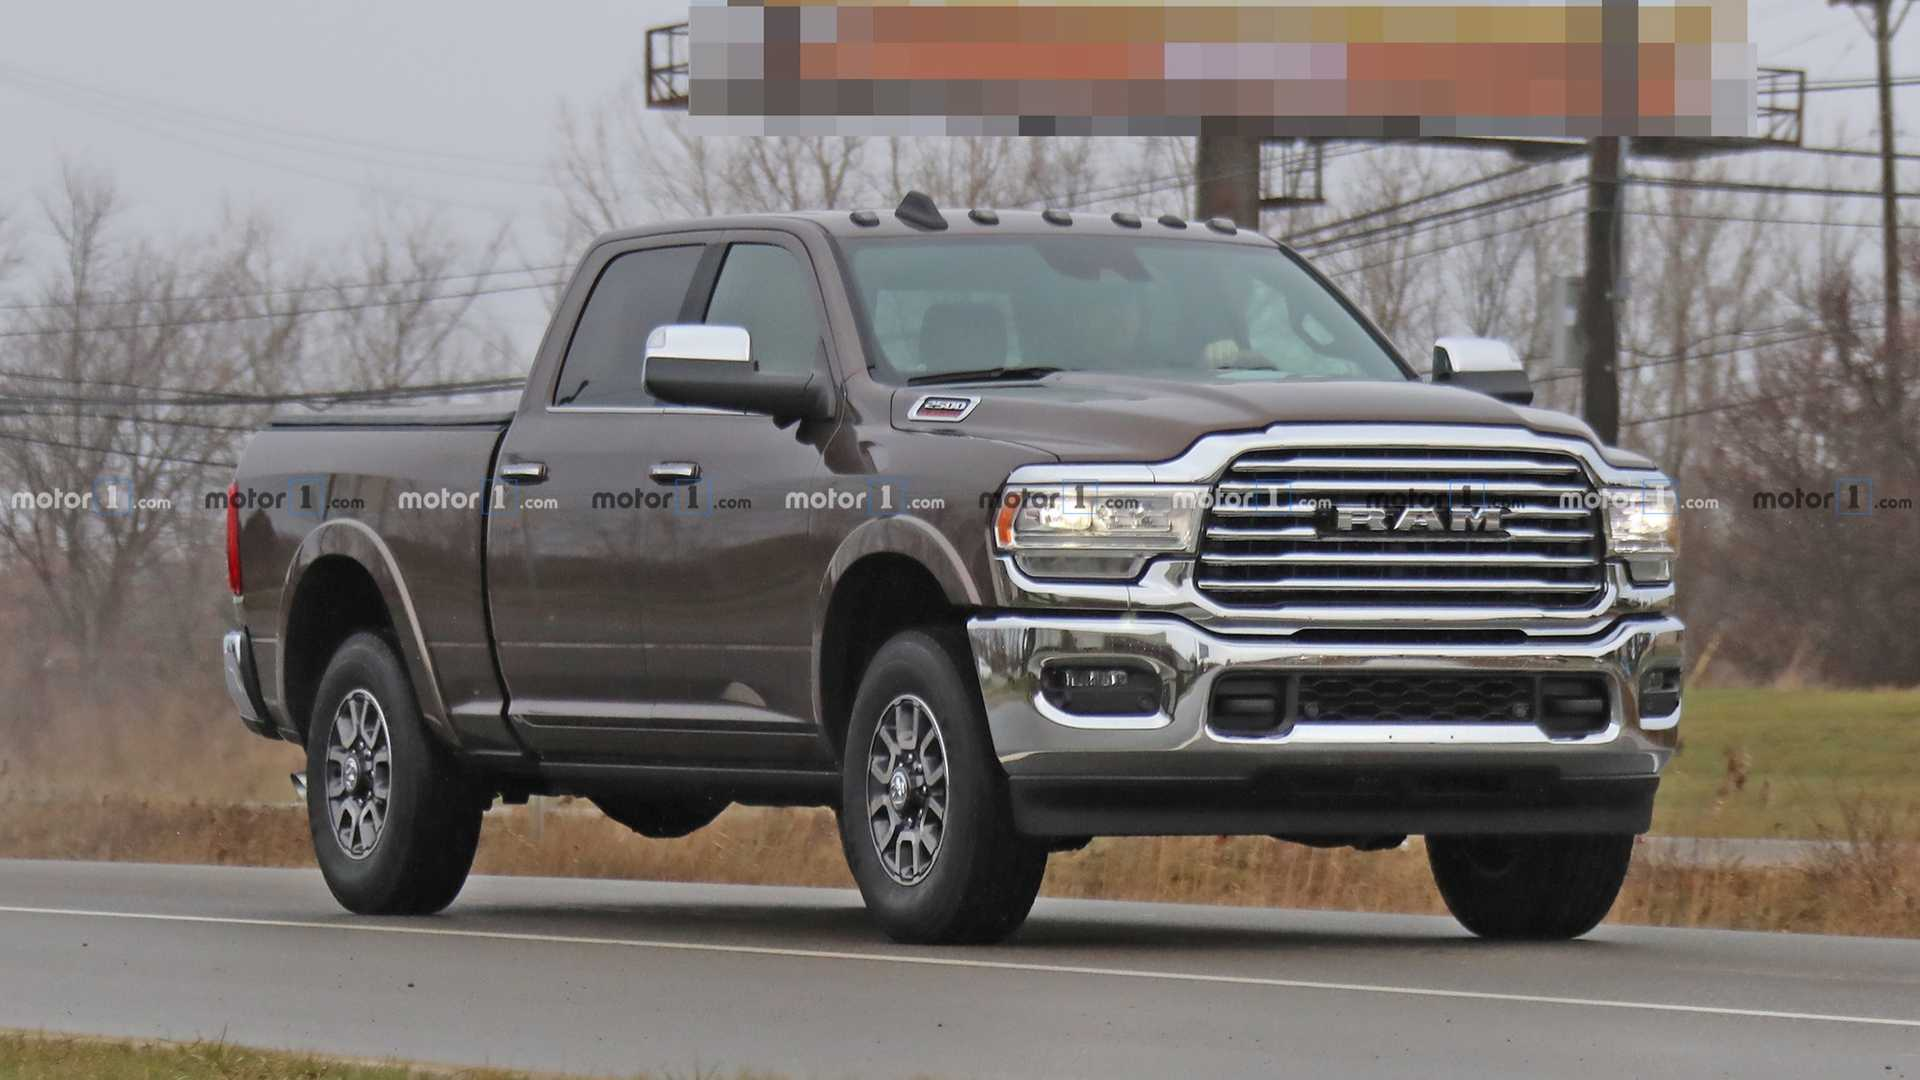 2020 Ram Hd Interior Fully Revealed In Latest Spy Shots